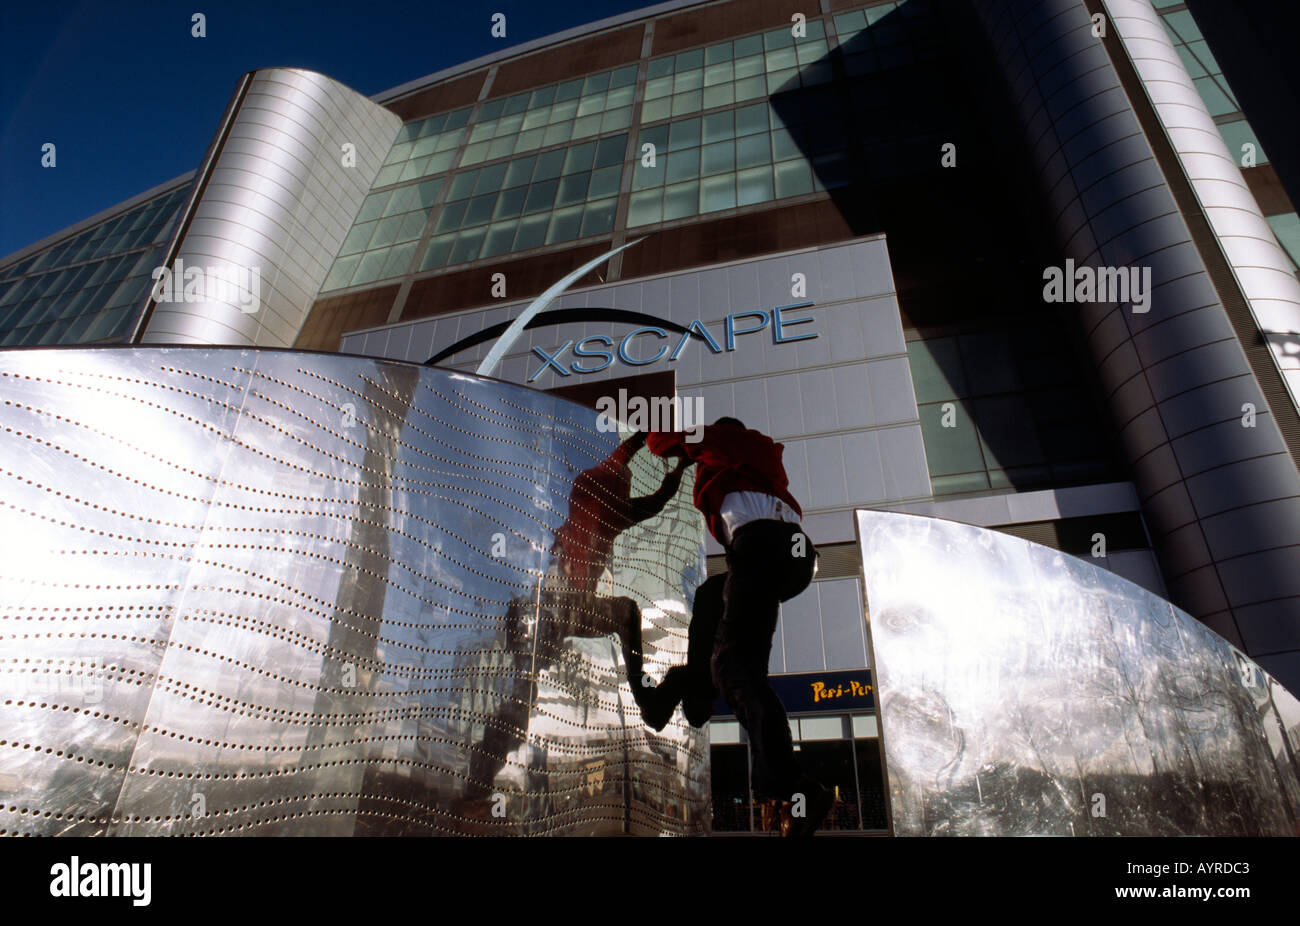 PICTURE CREDIT DOUG BLANE Doug Blane practicing Le Parkour climbing freerunning outside the Xscape snow dome Central - Stock Image